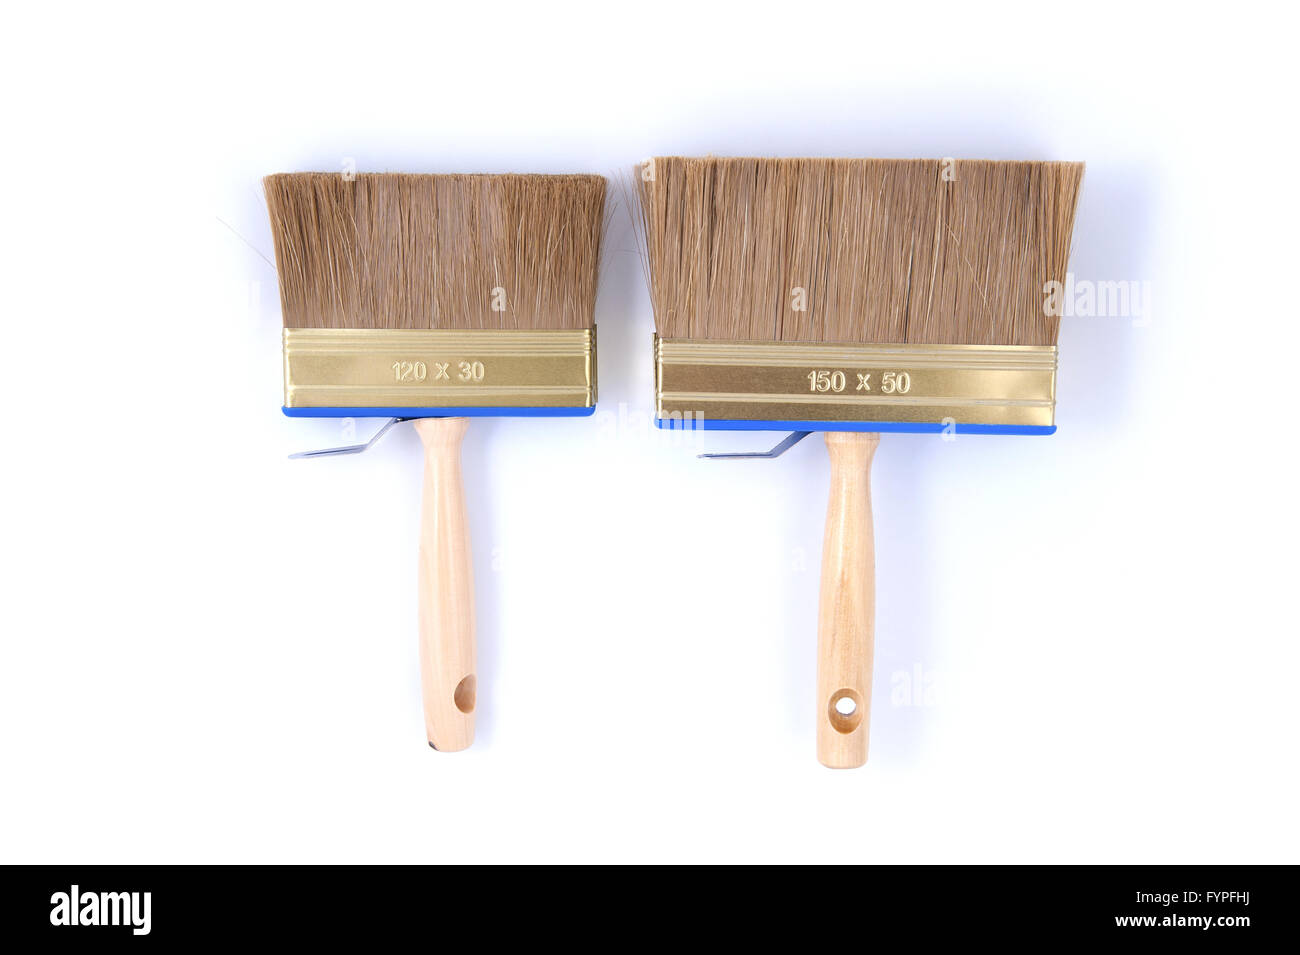 Two paint brushes of different sizes. - Stock Image